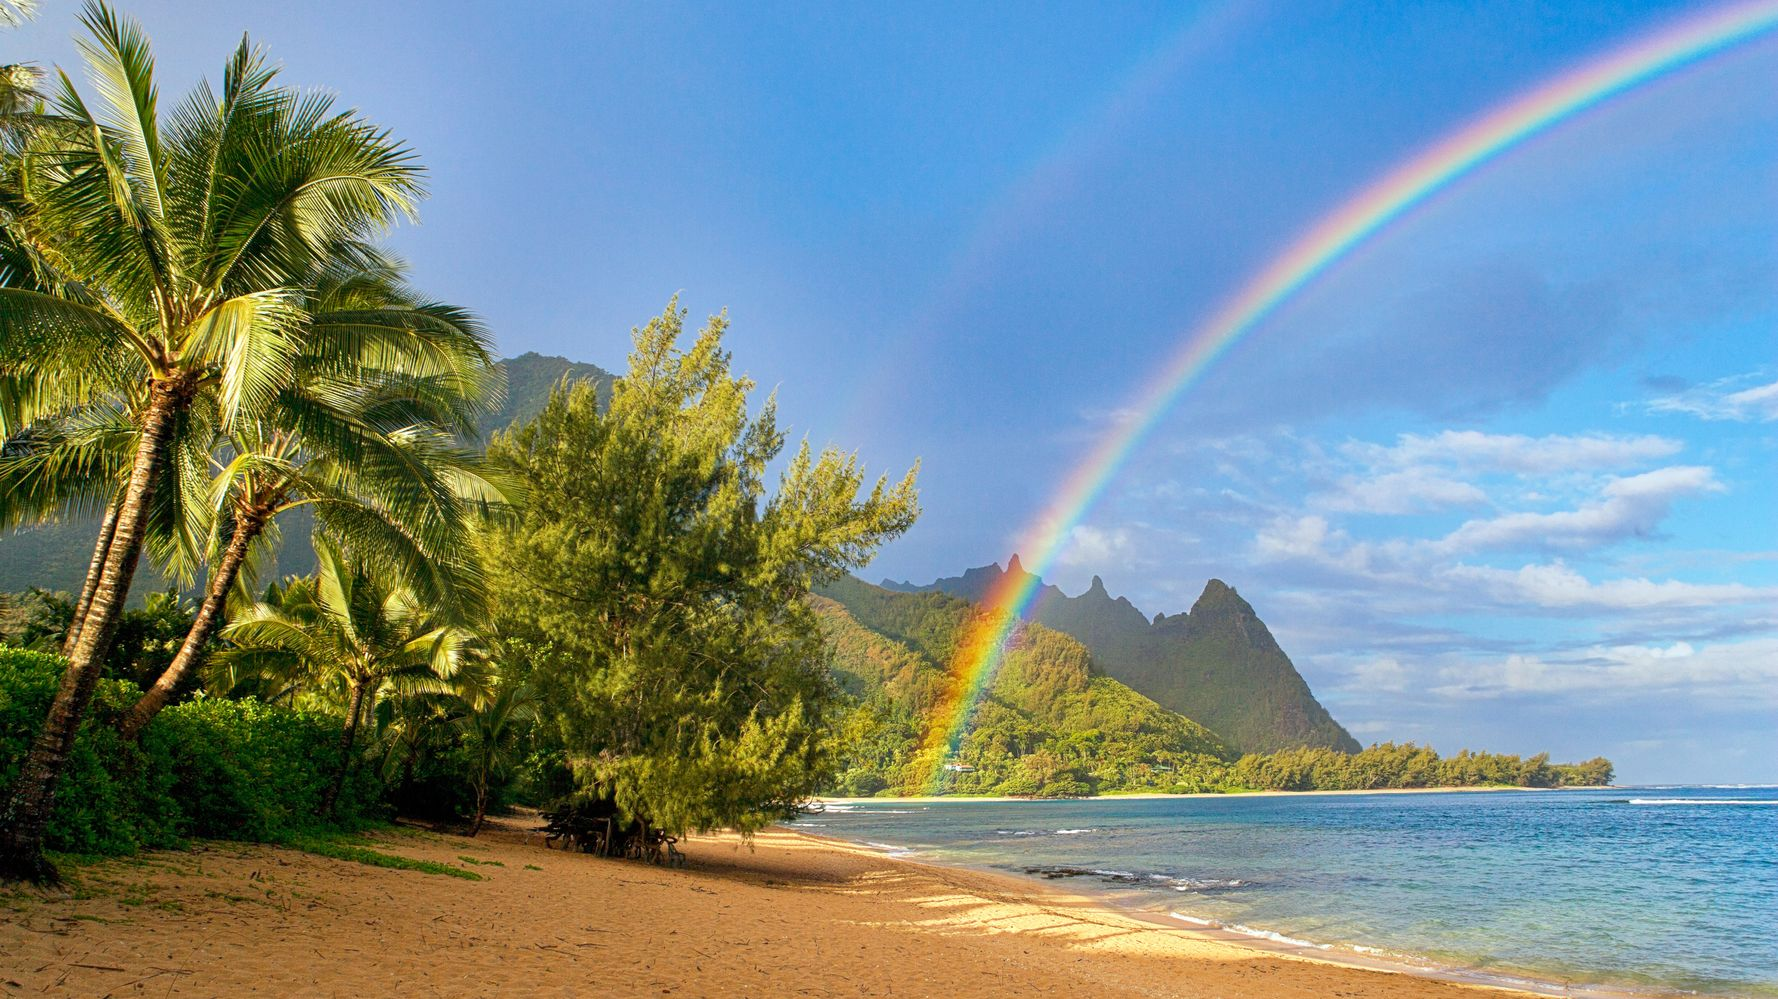 5 Slang Phrases That Perfectly Sum Up Why Hawaii Is So Damn